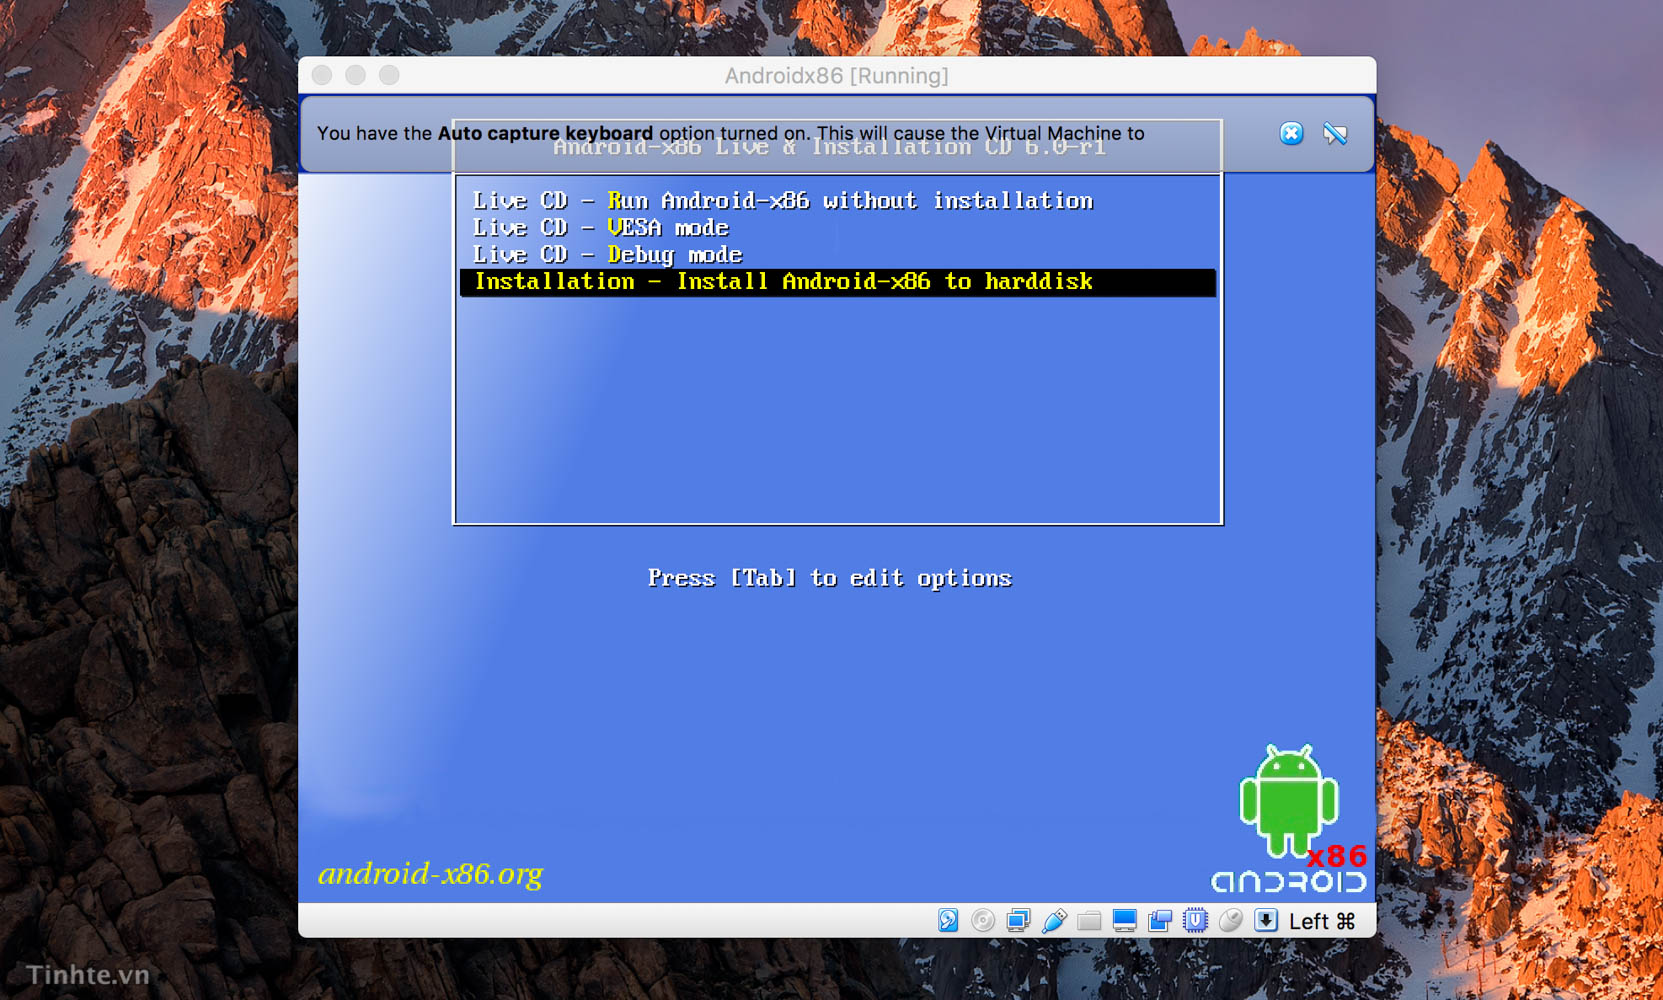 Install_Androidx86.jpg